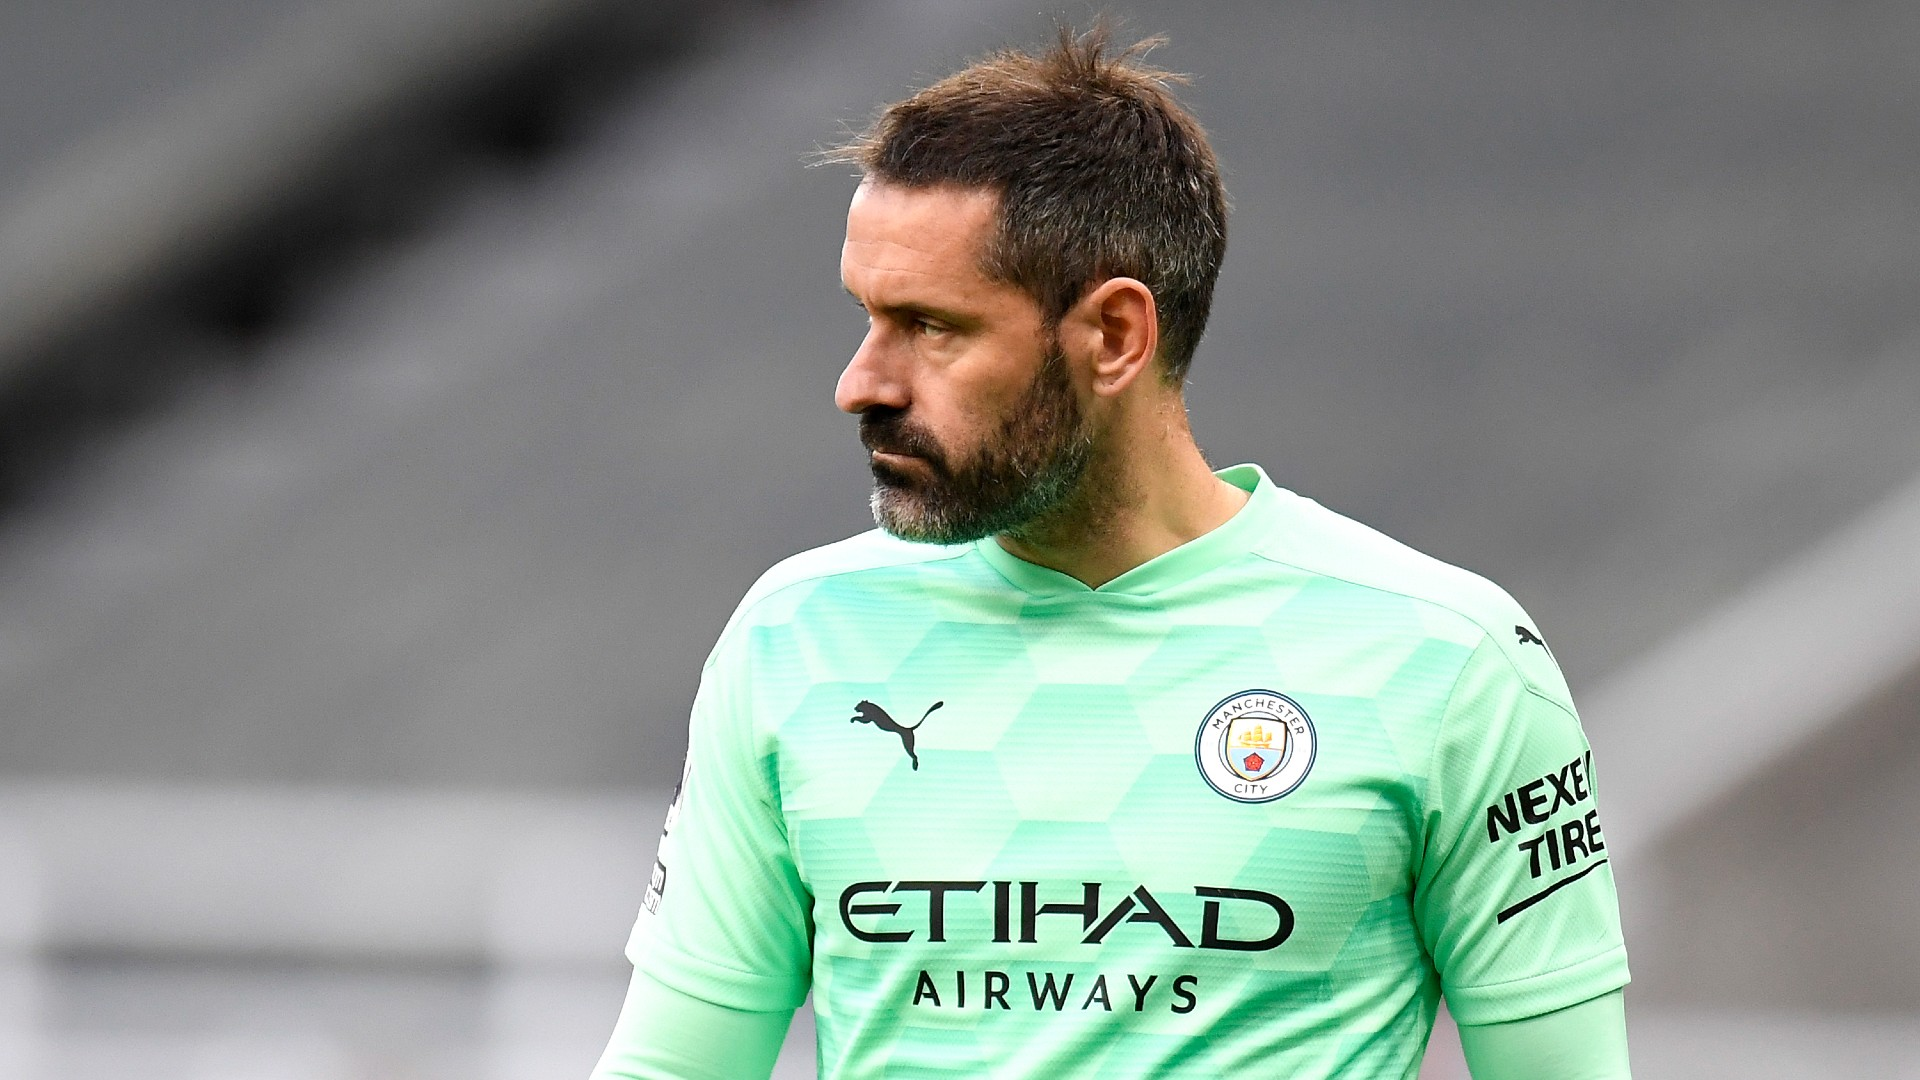 Veteran keeper Carson signs one-year Man City deal after becoming a free agent